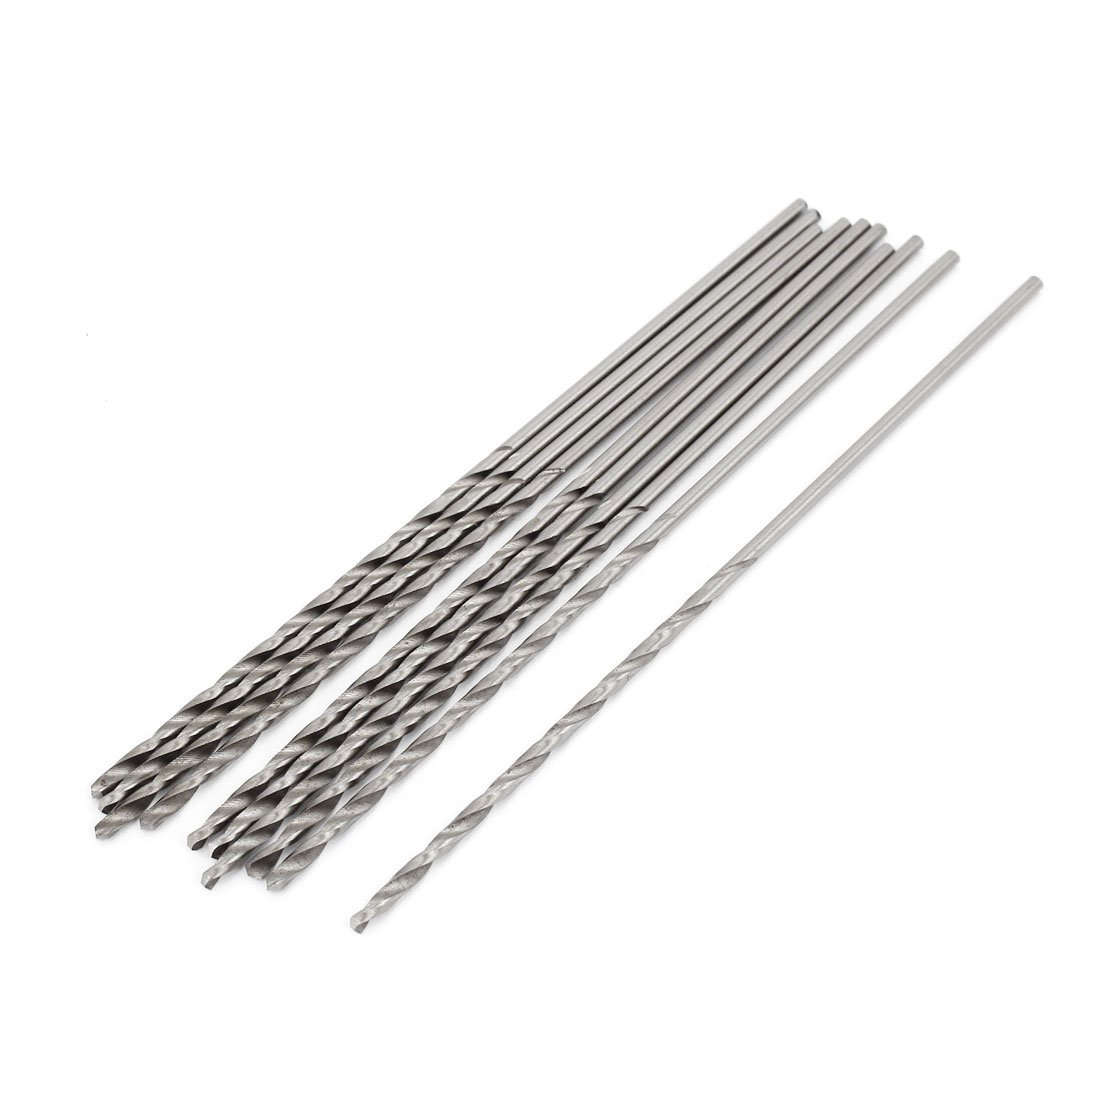 High Speed Steel 2.5mm x 80mm Tip Straight Shank Twist Drill Bit 10pcs Sourcingmap A14082900UX0257